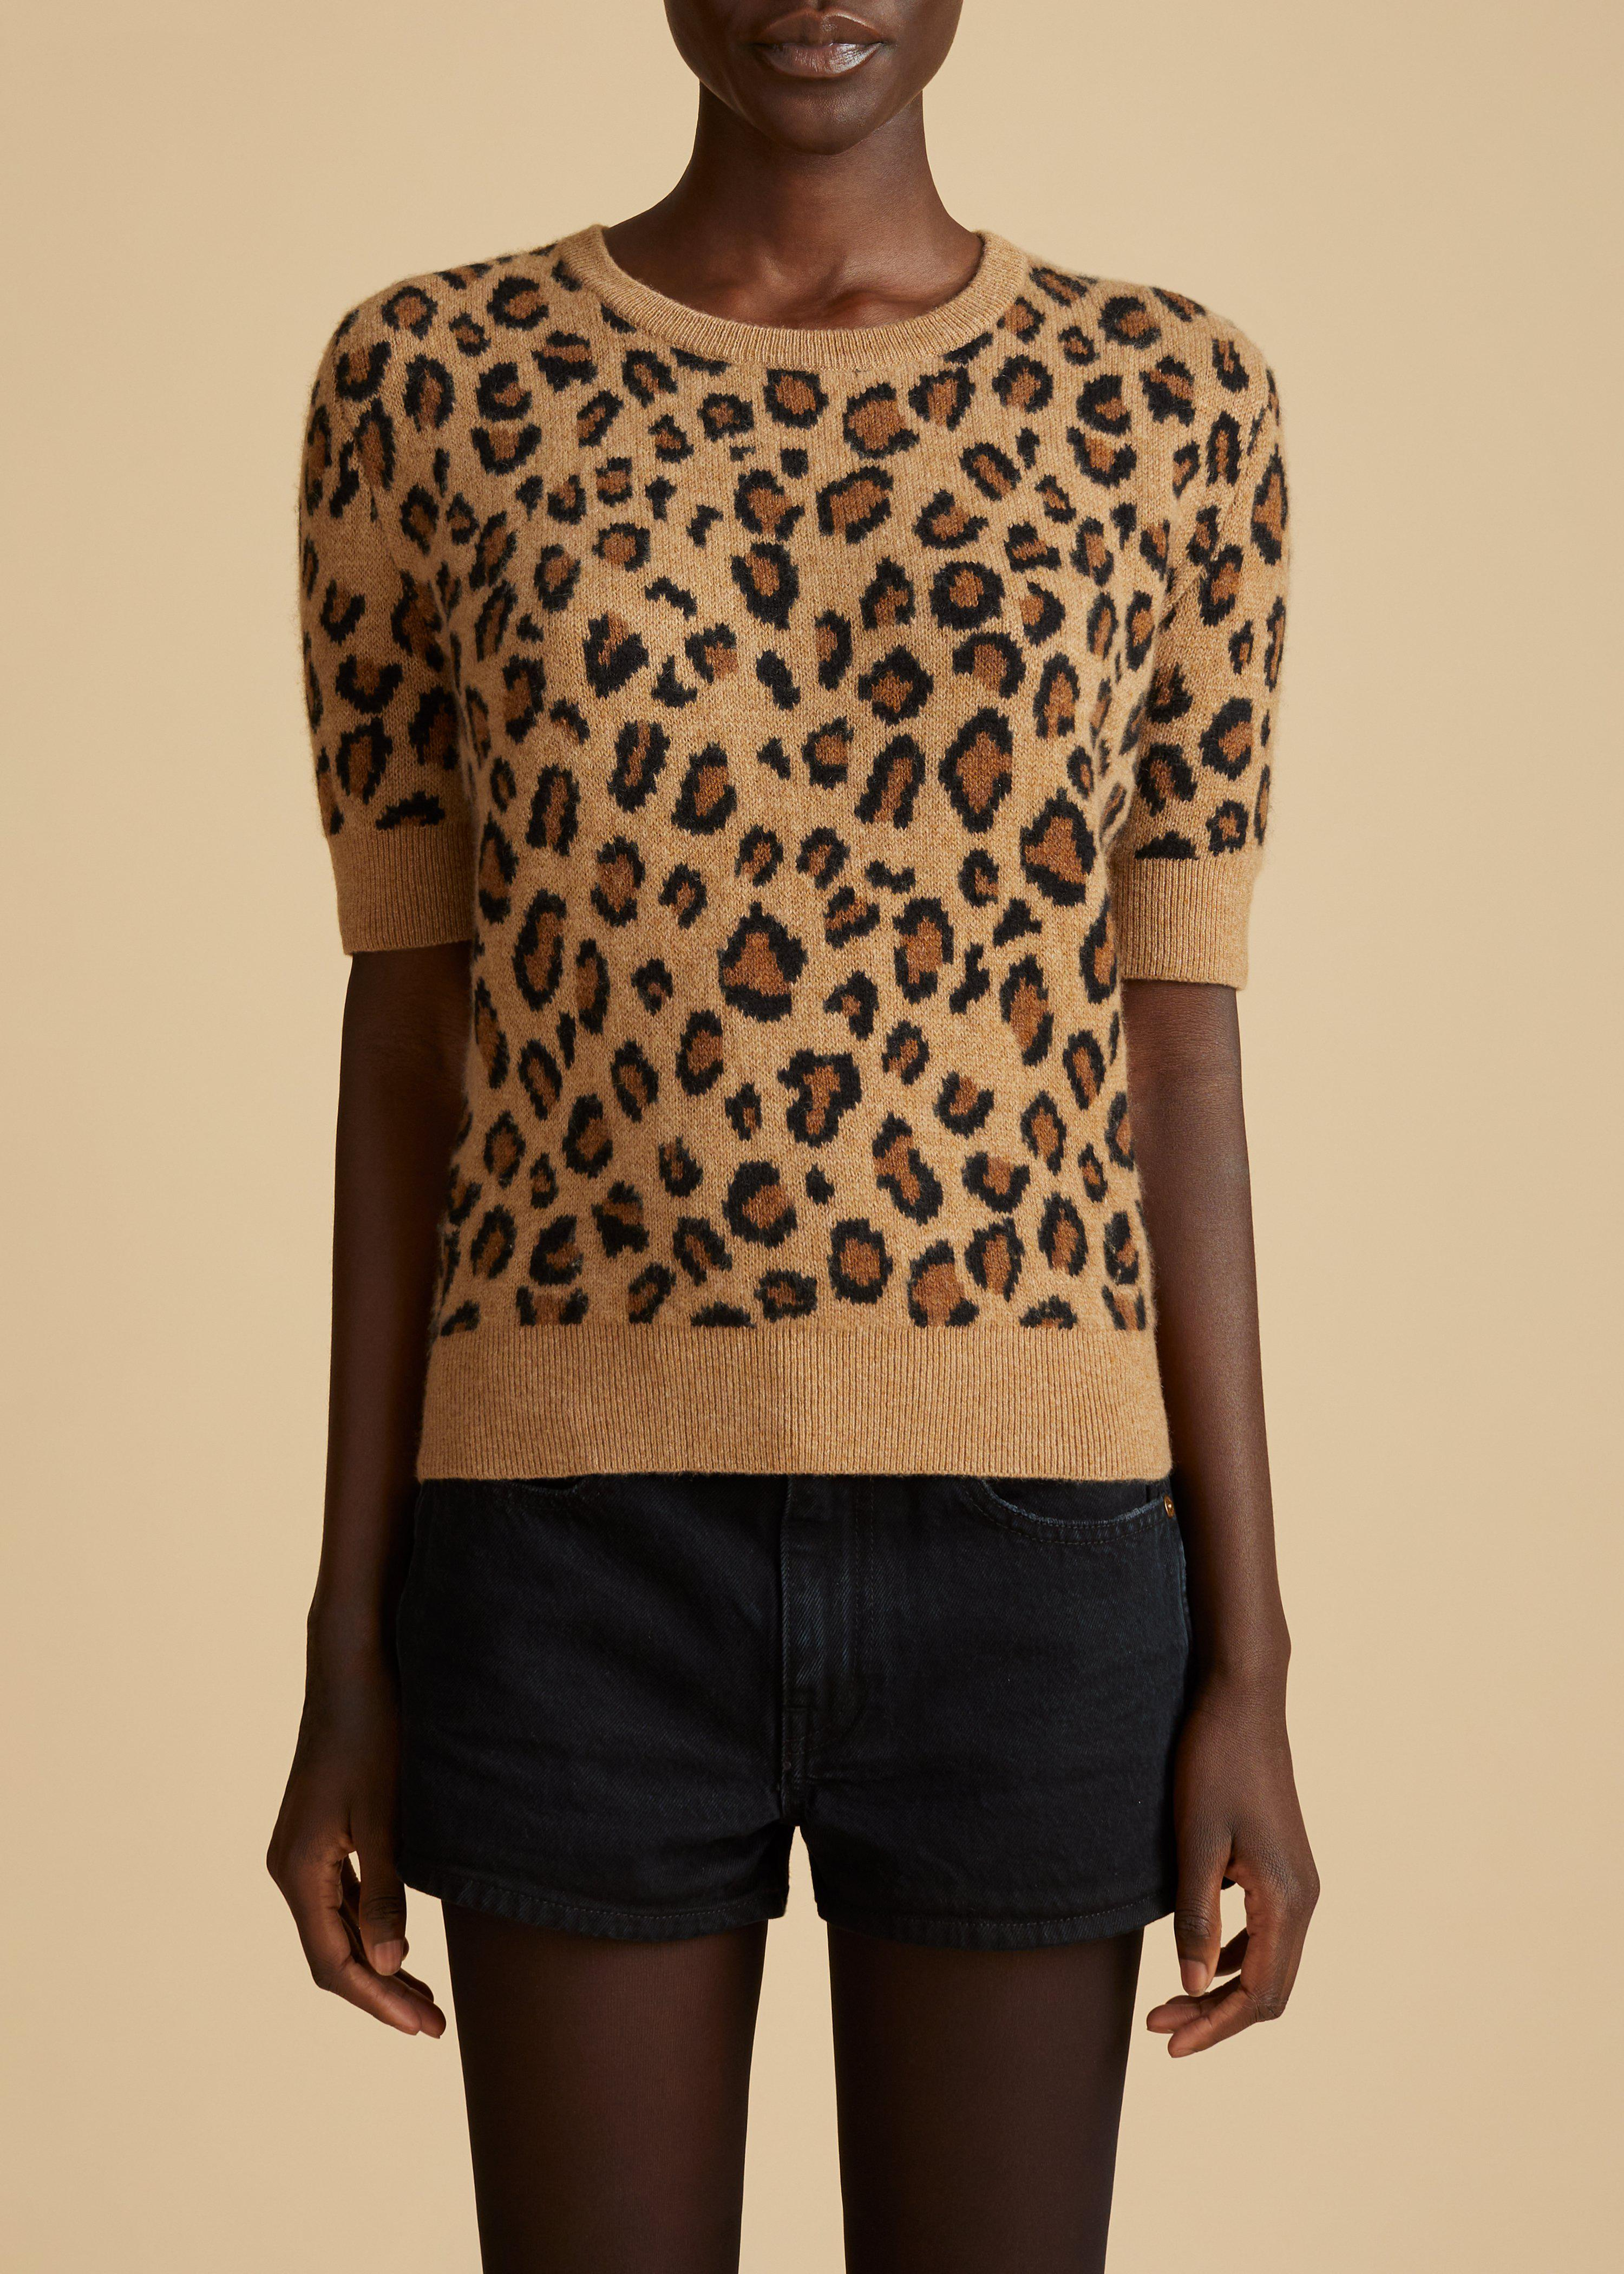 The Dianna Sweater in Cheetah